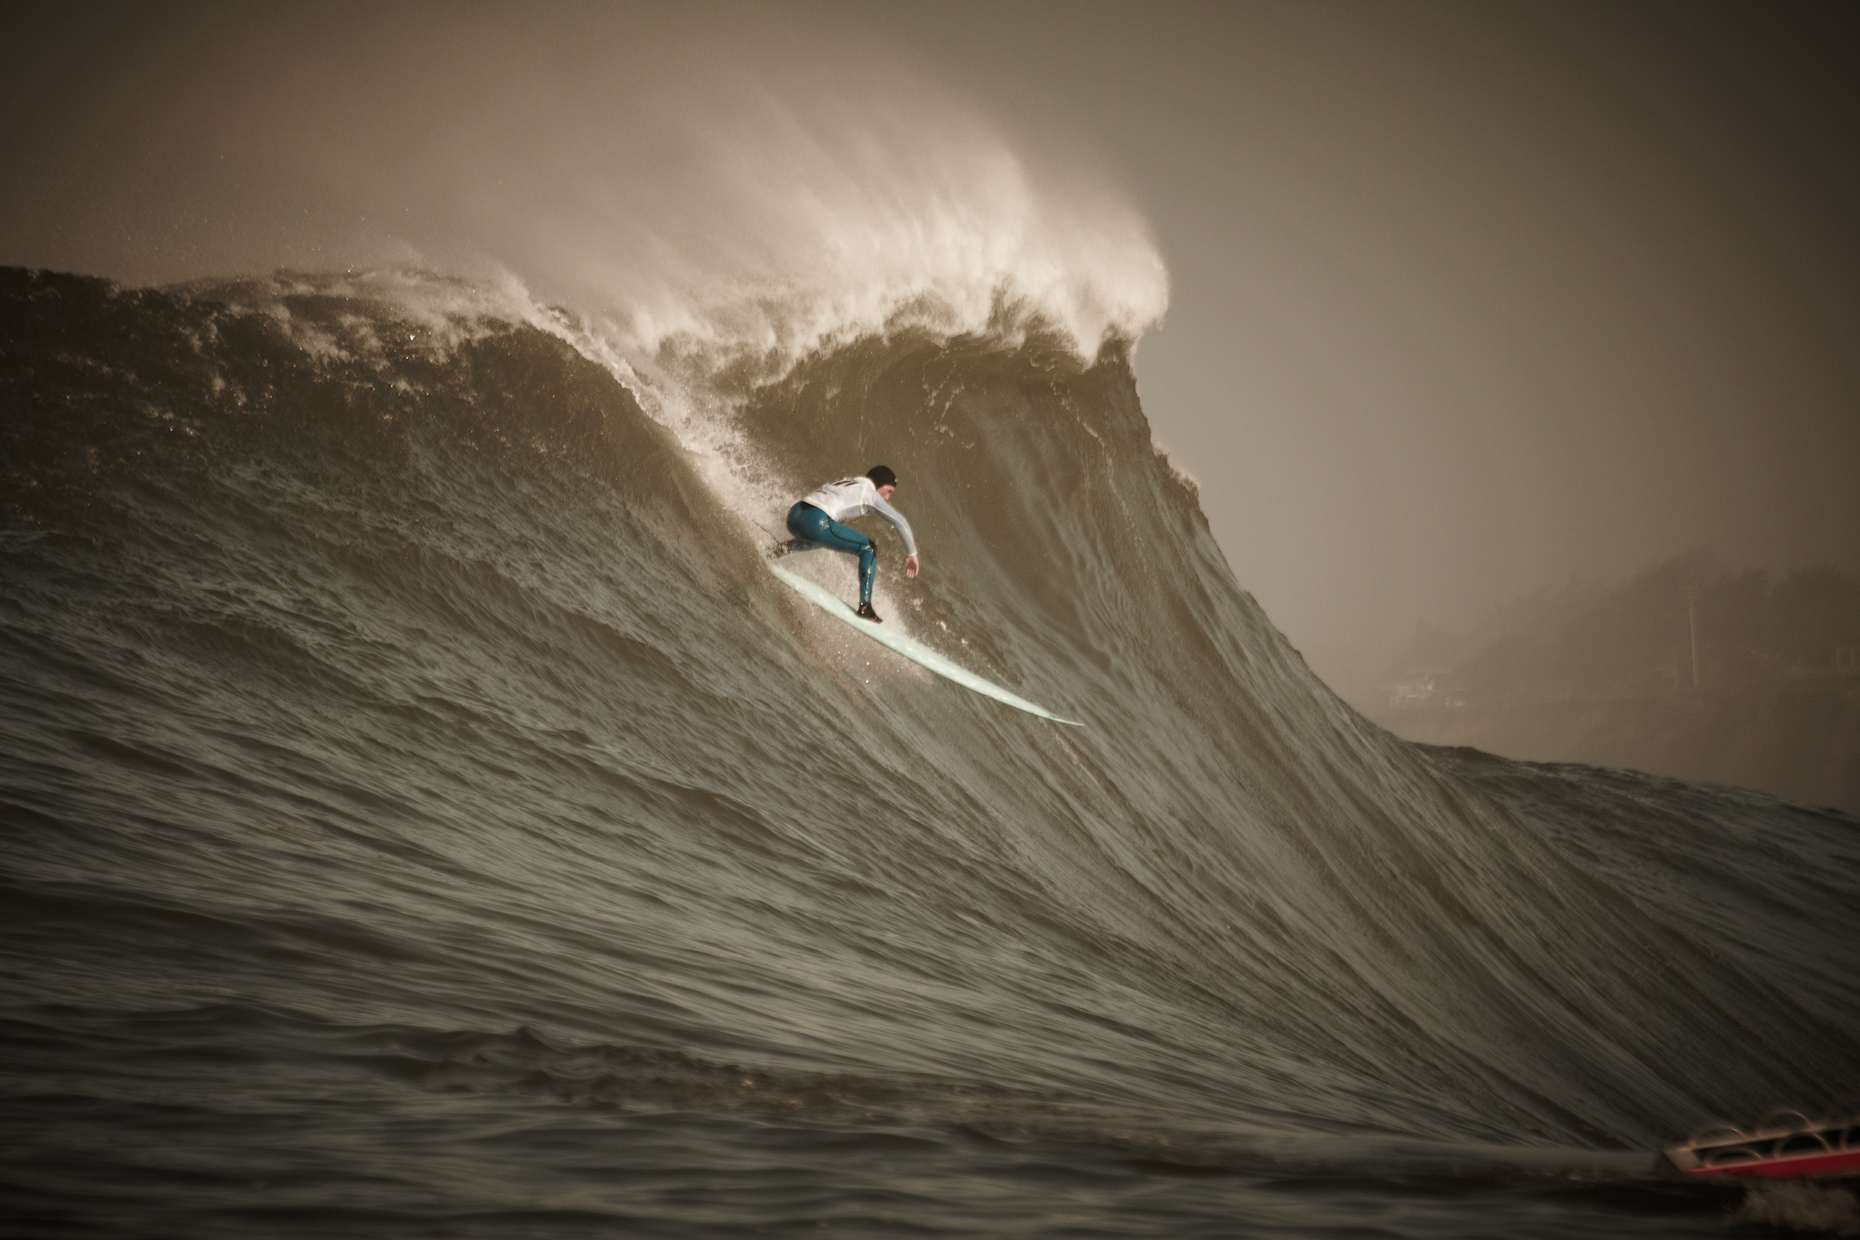 Projects Action Photography Derek Israelsen 005 Surfing